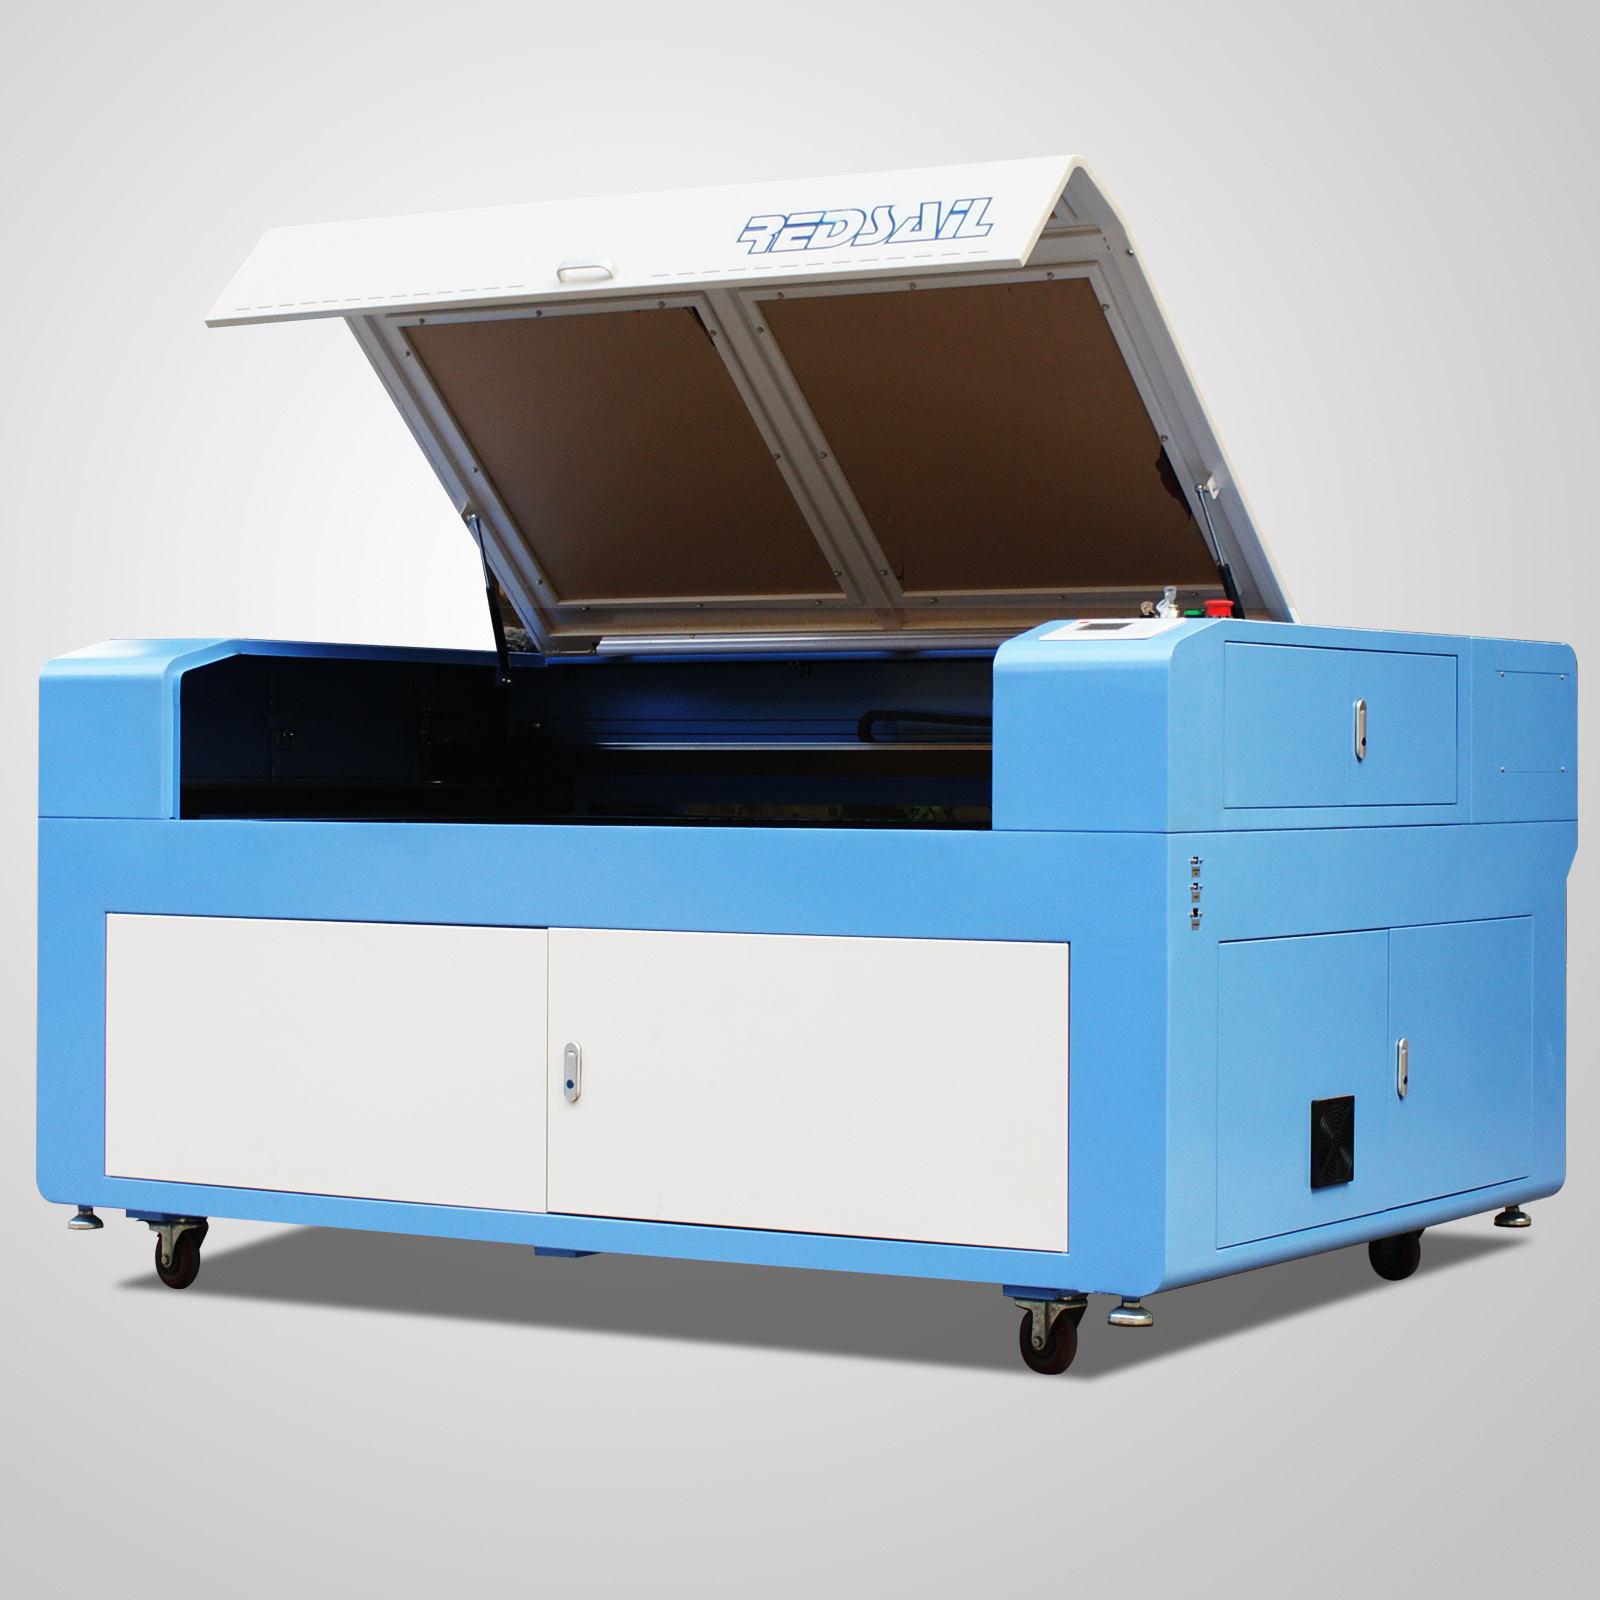 Co2 Laser Machines Systems For Laser Engraving And Laser